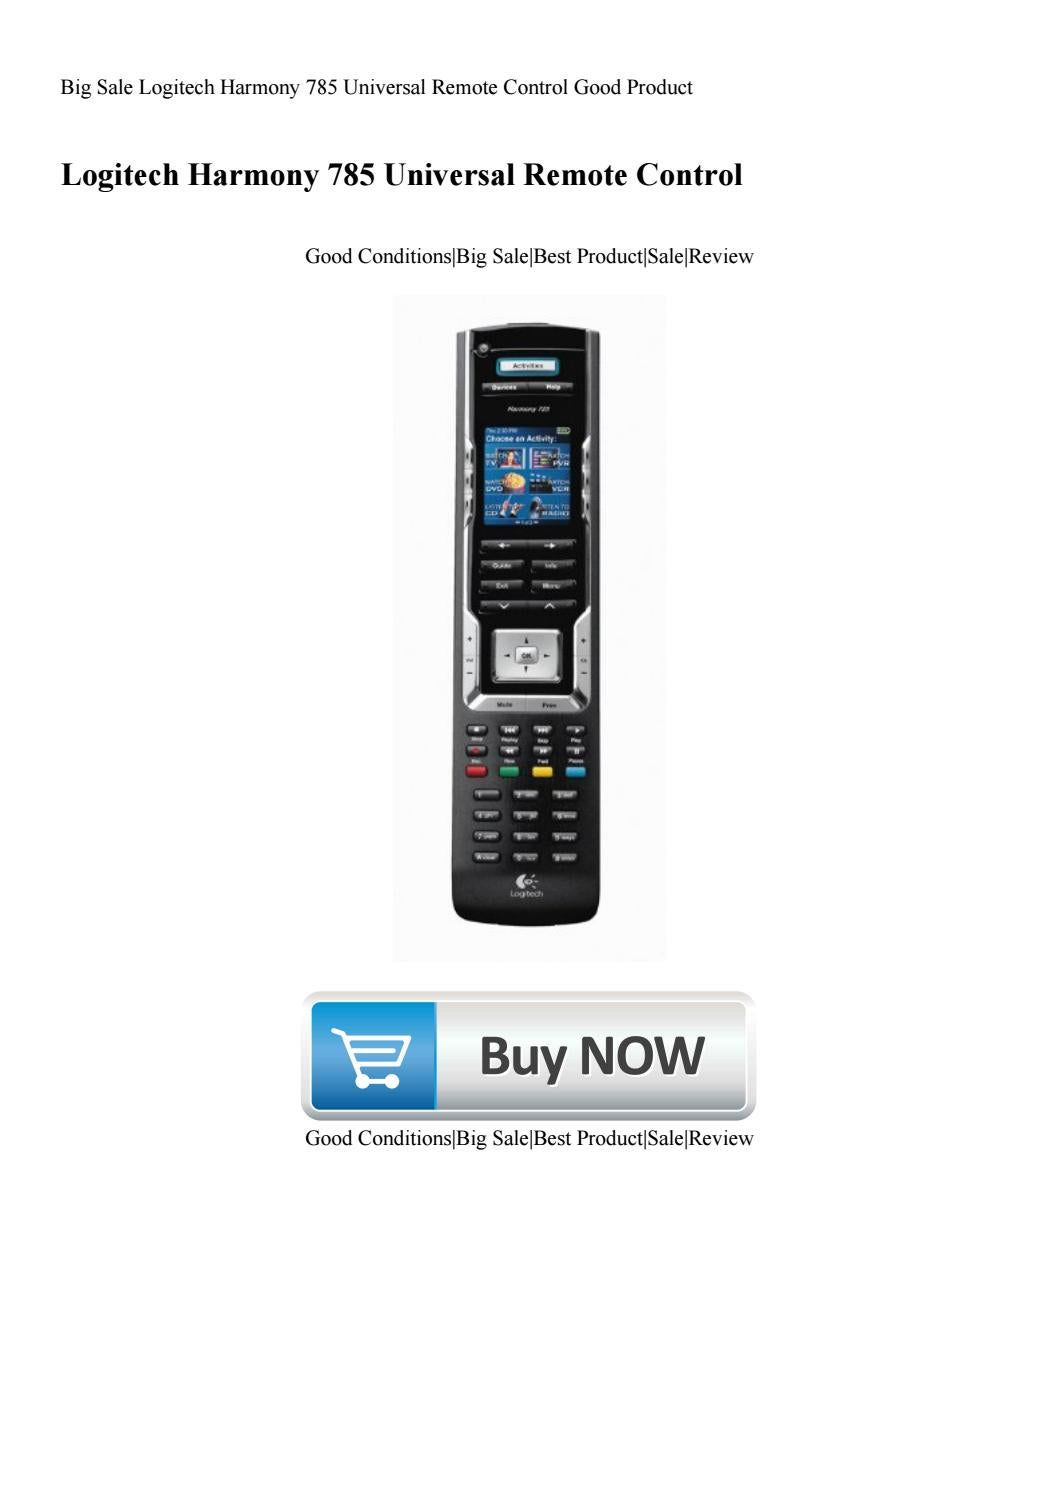 Big Sale Logitech Harmony 785 Universal Remote Control Good